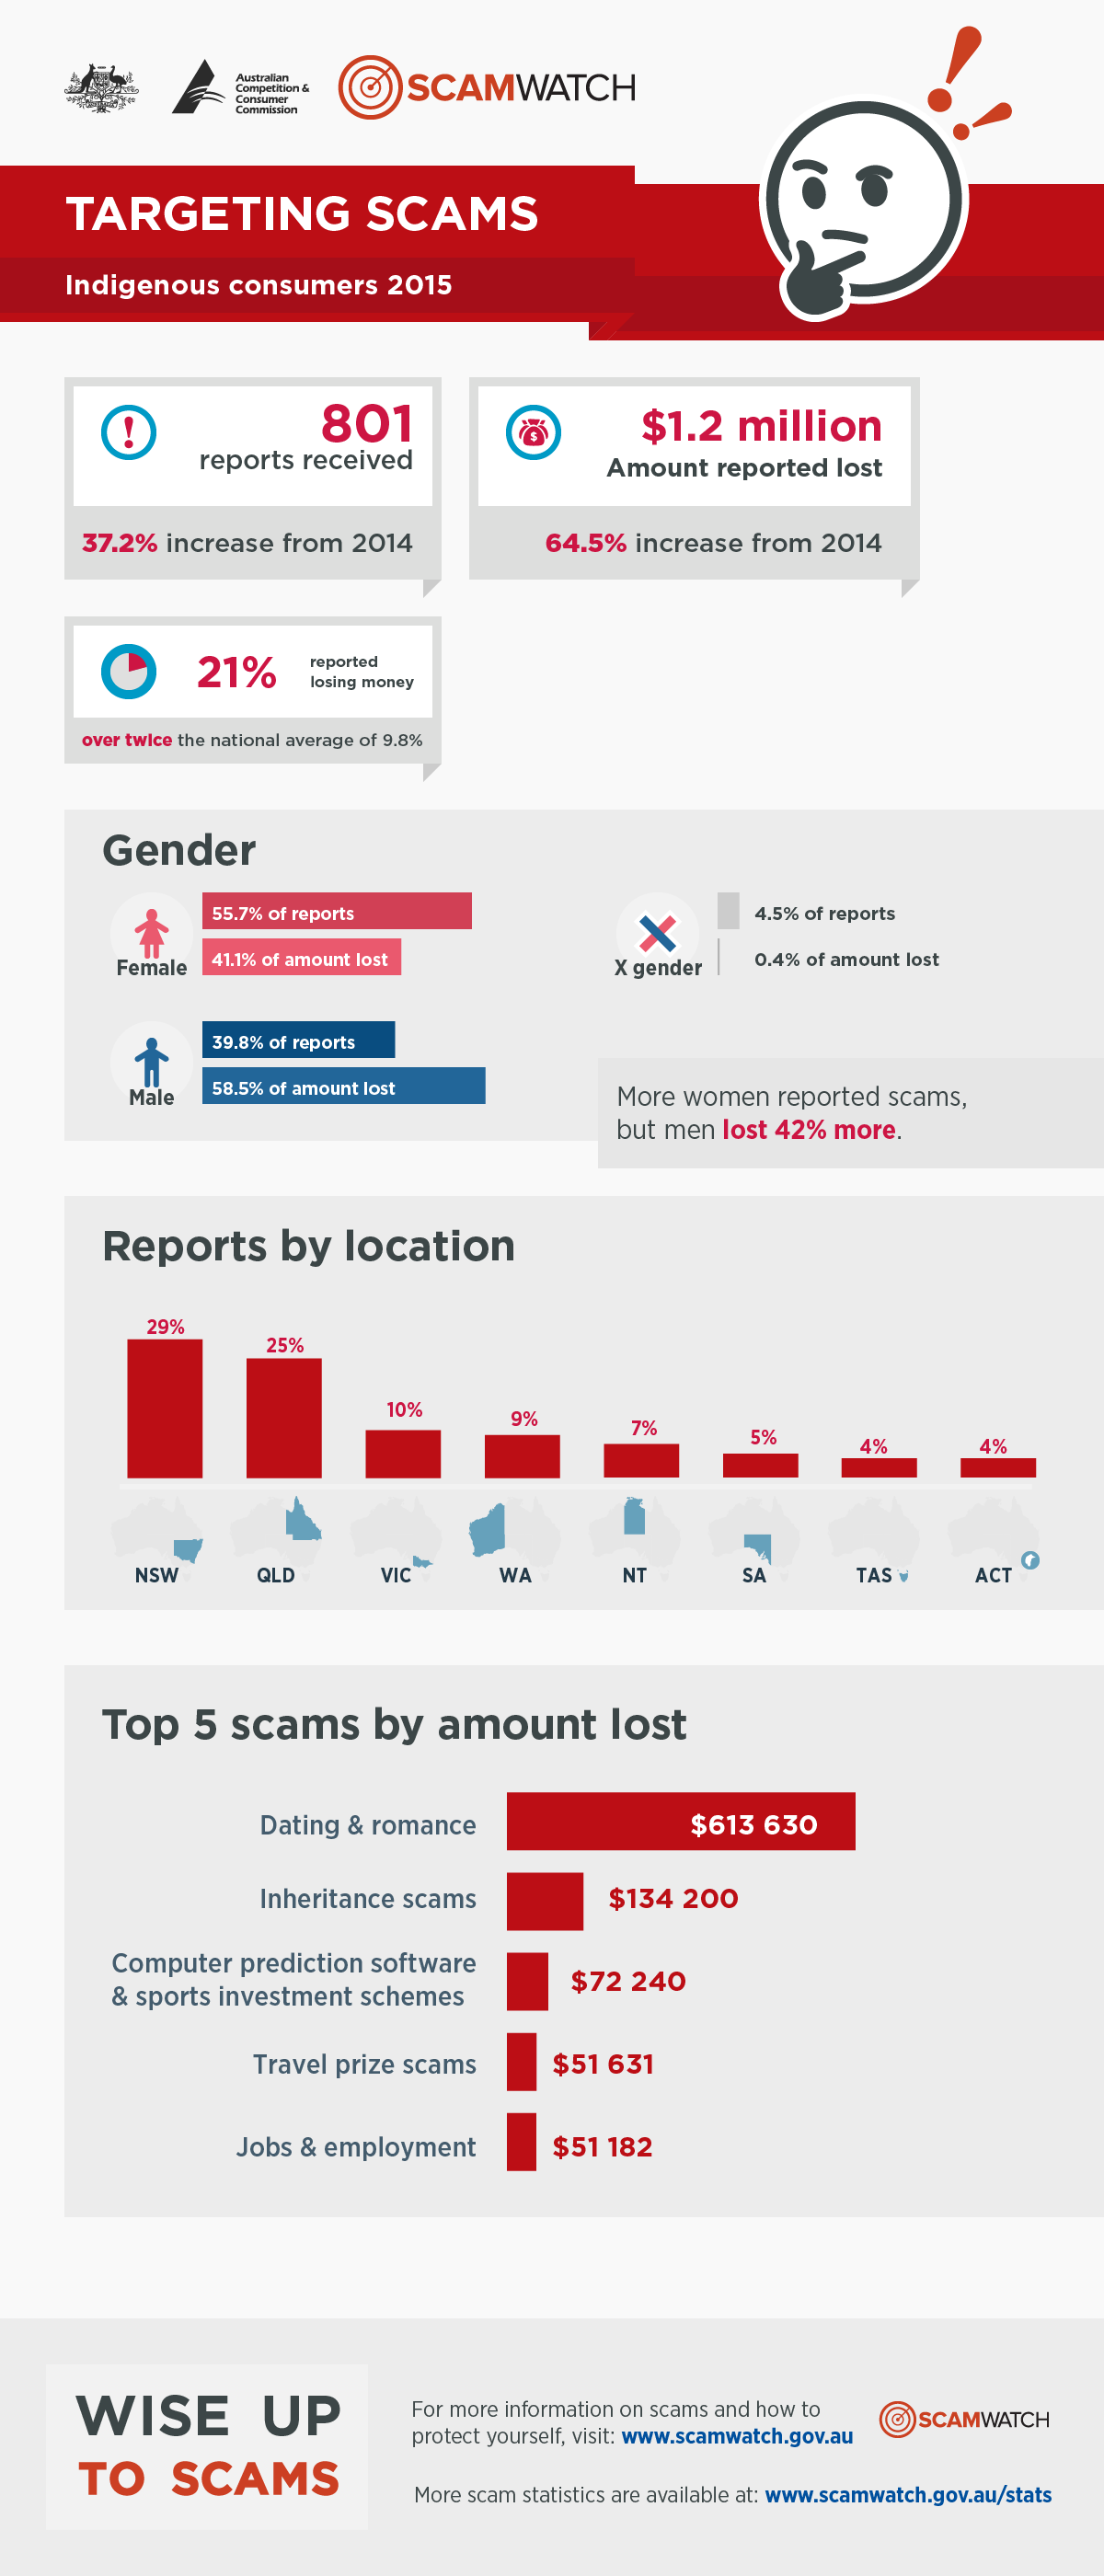 Scams infographic 2015 - Indigenous consumers